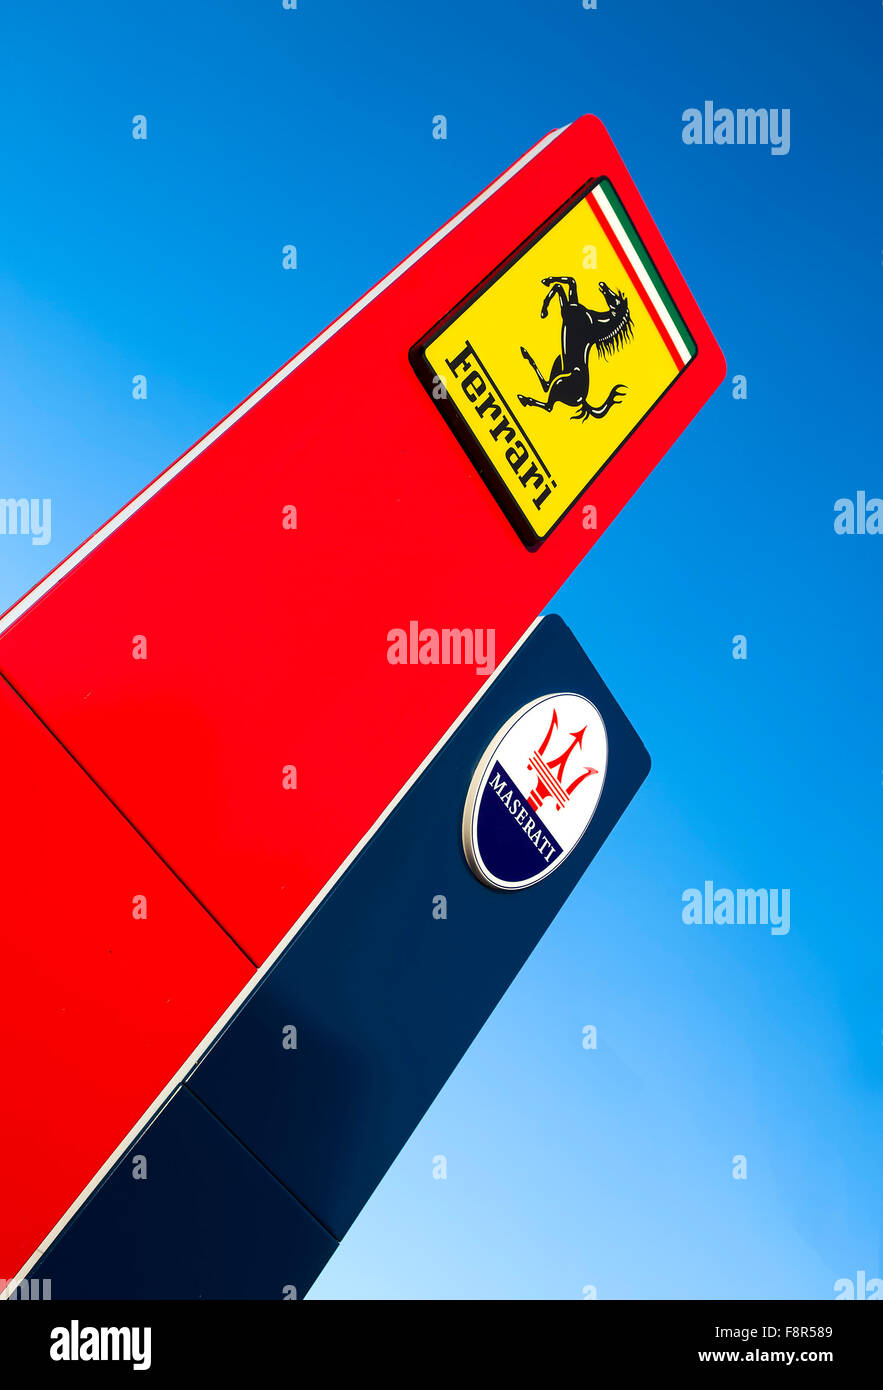 Maserati and Ferrari Signs Outside Car Dealership against a blue sky showing the logos of the Italian sports car - Stock Image